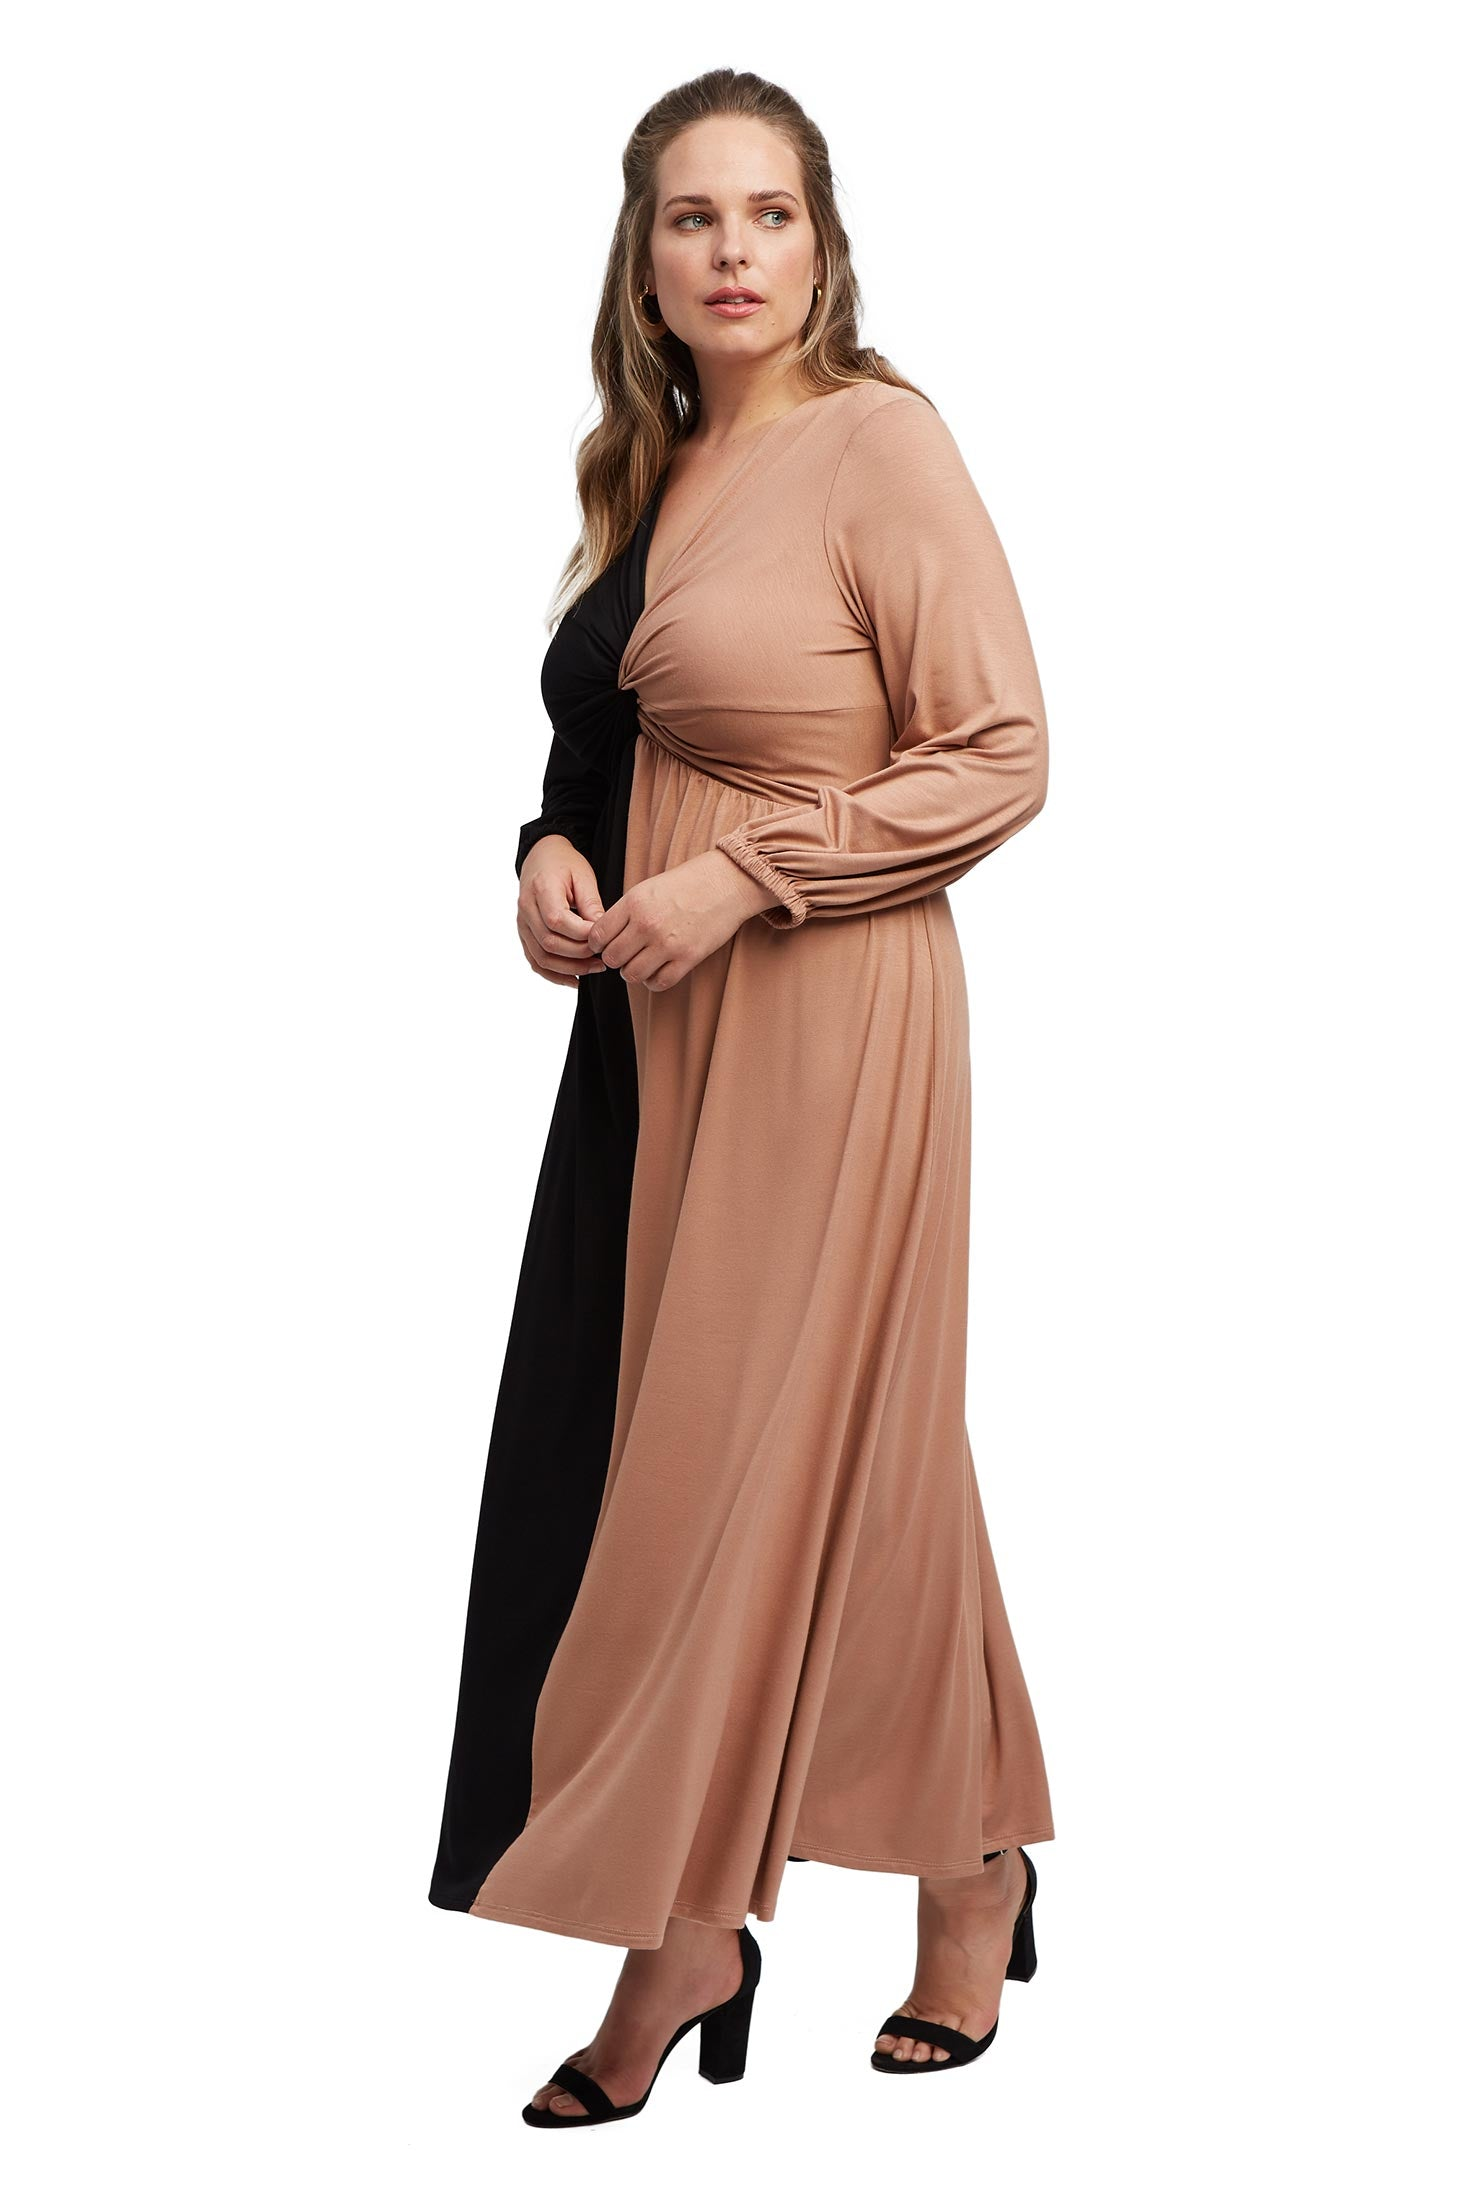 Two-Tone Twist Dress - Black Dulce Colorblock, Plus Size